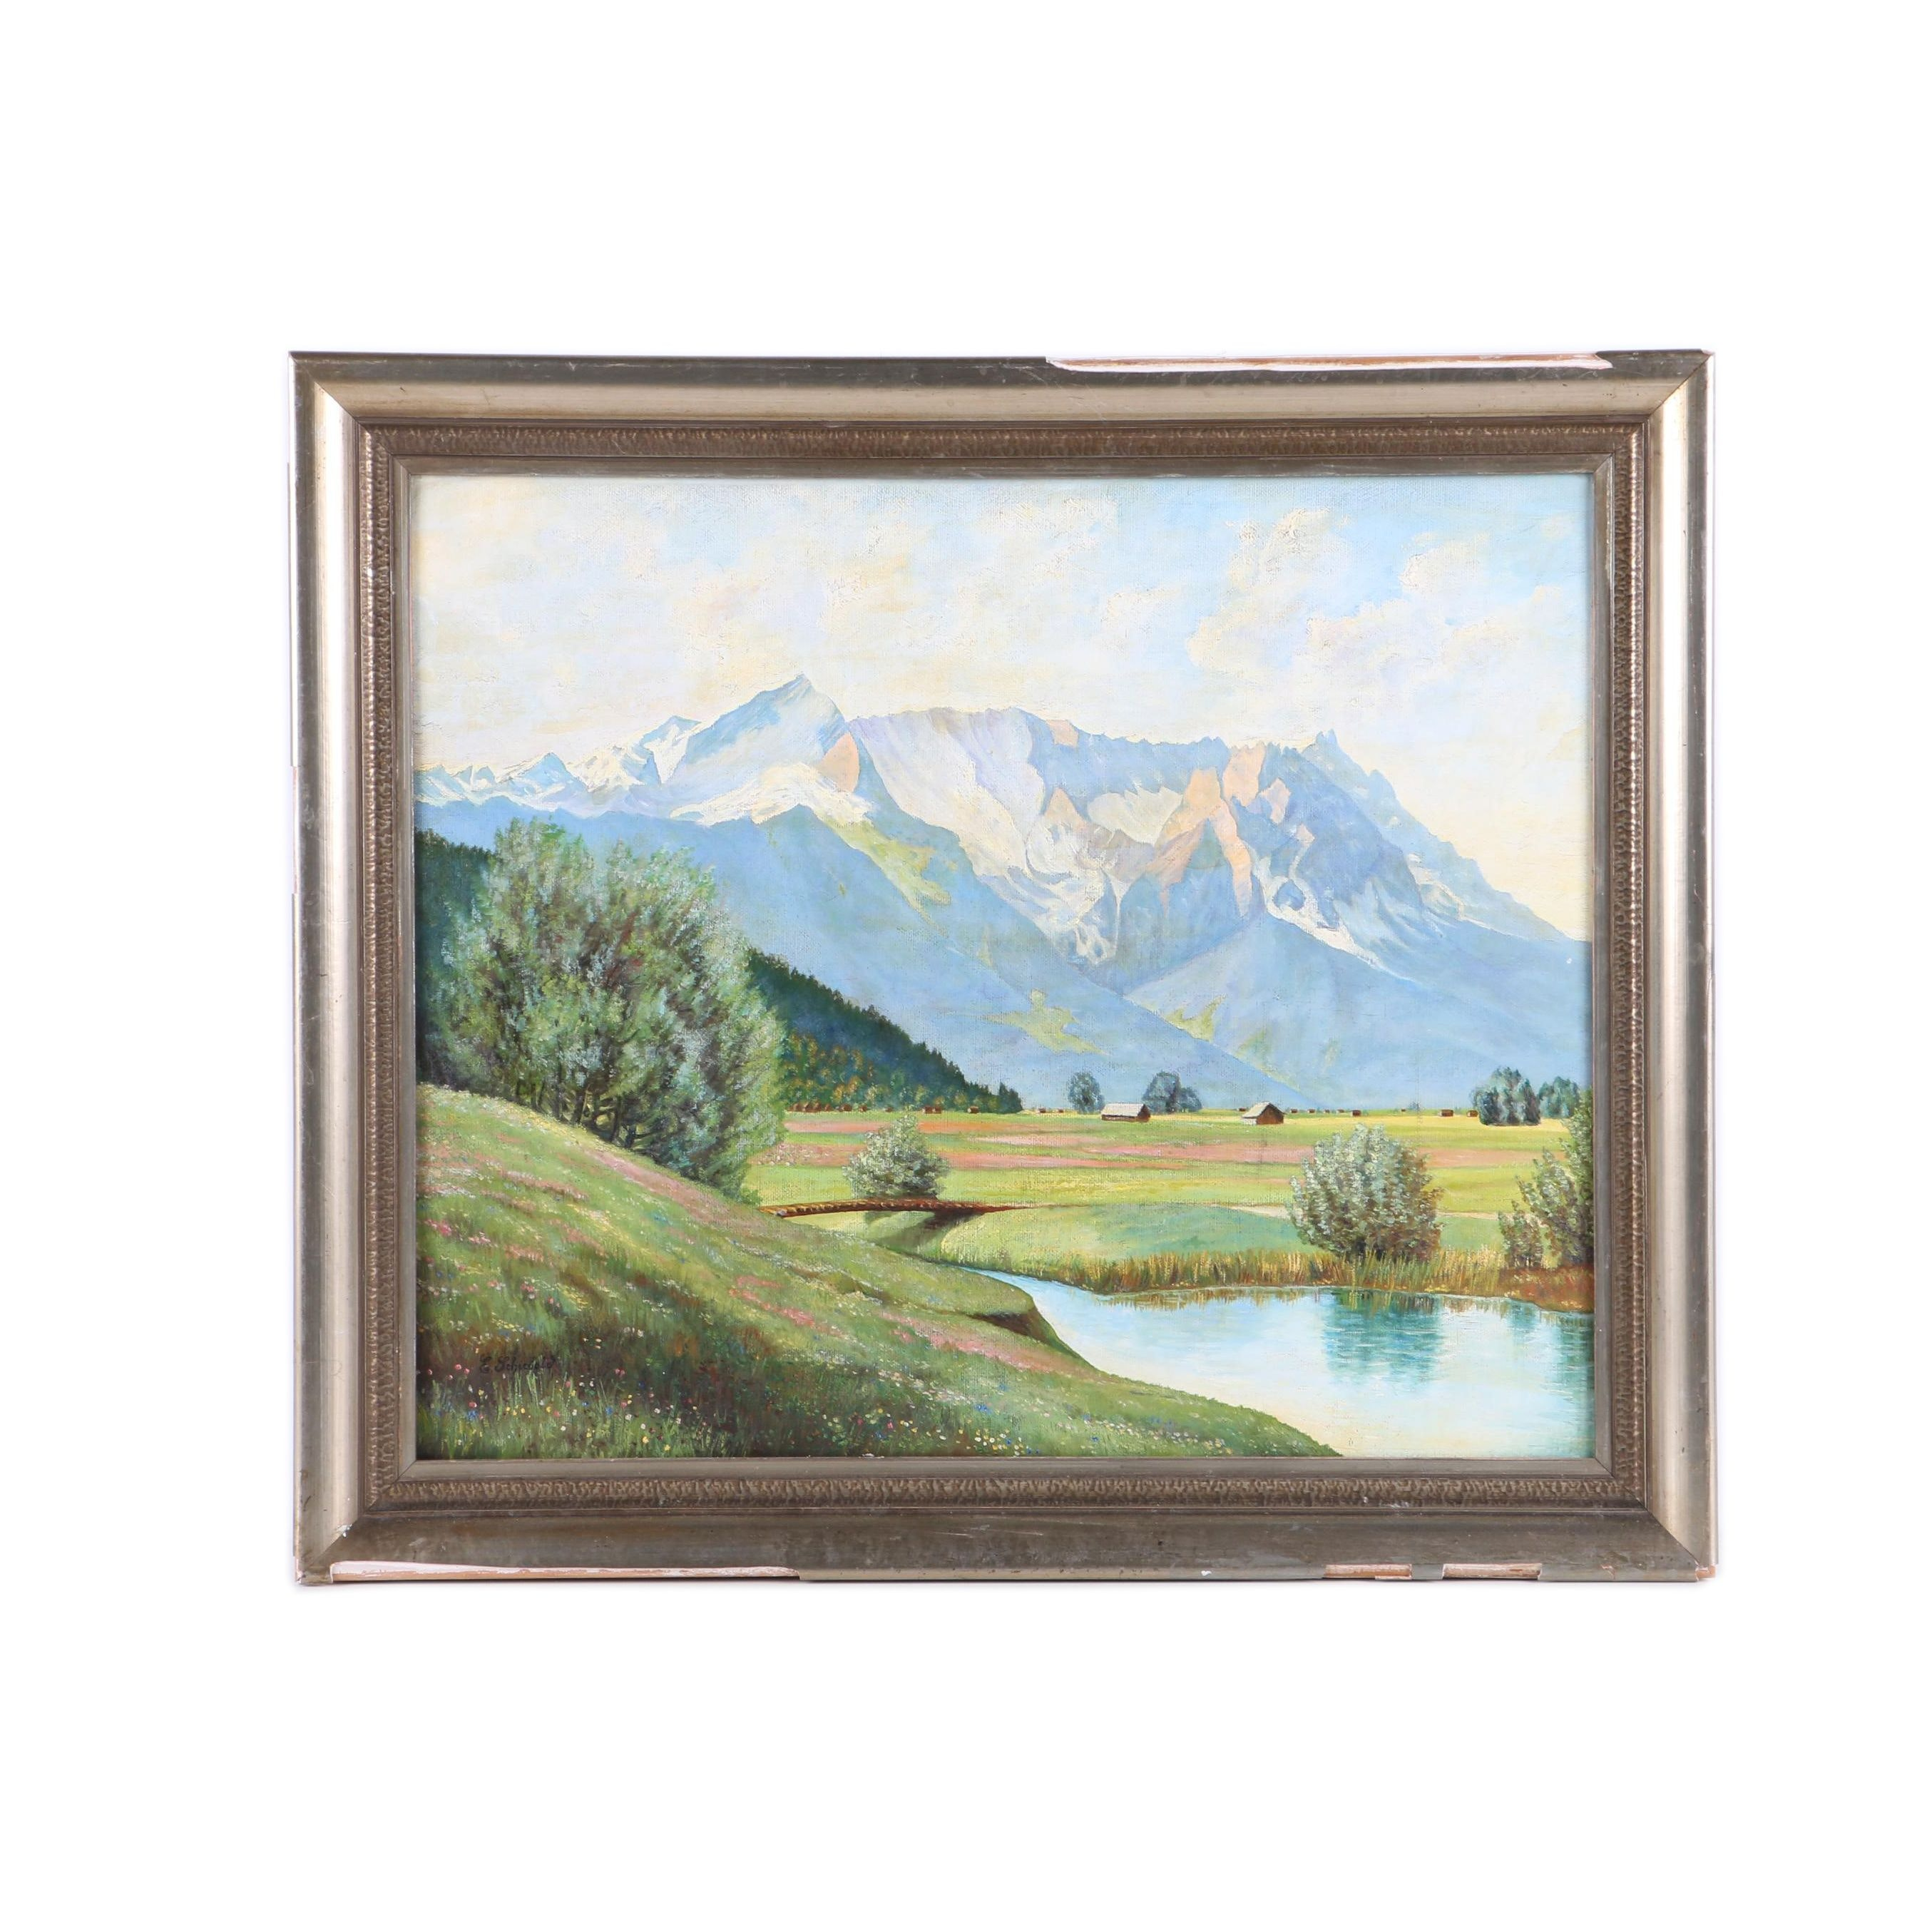 E. Schiebold 1940 Oil Painting on Canvas Board of Alpine Landscape